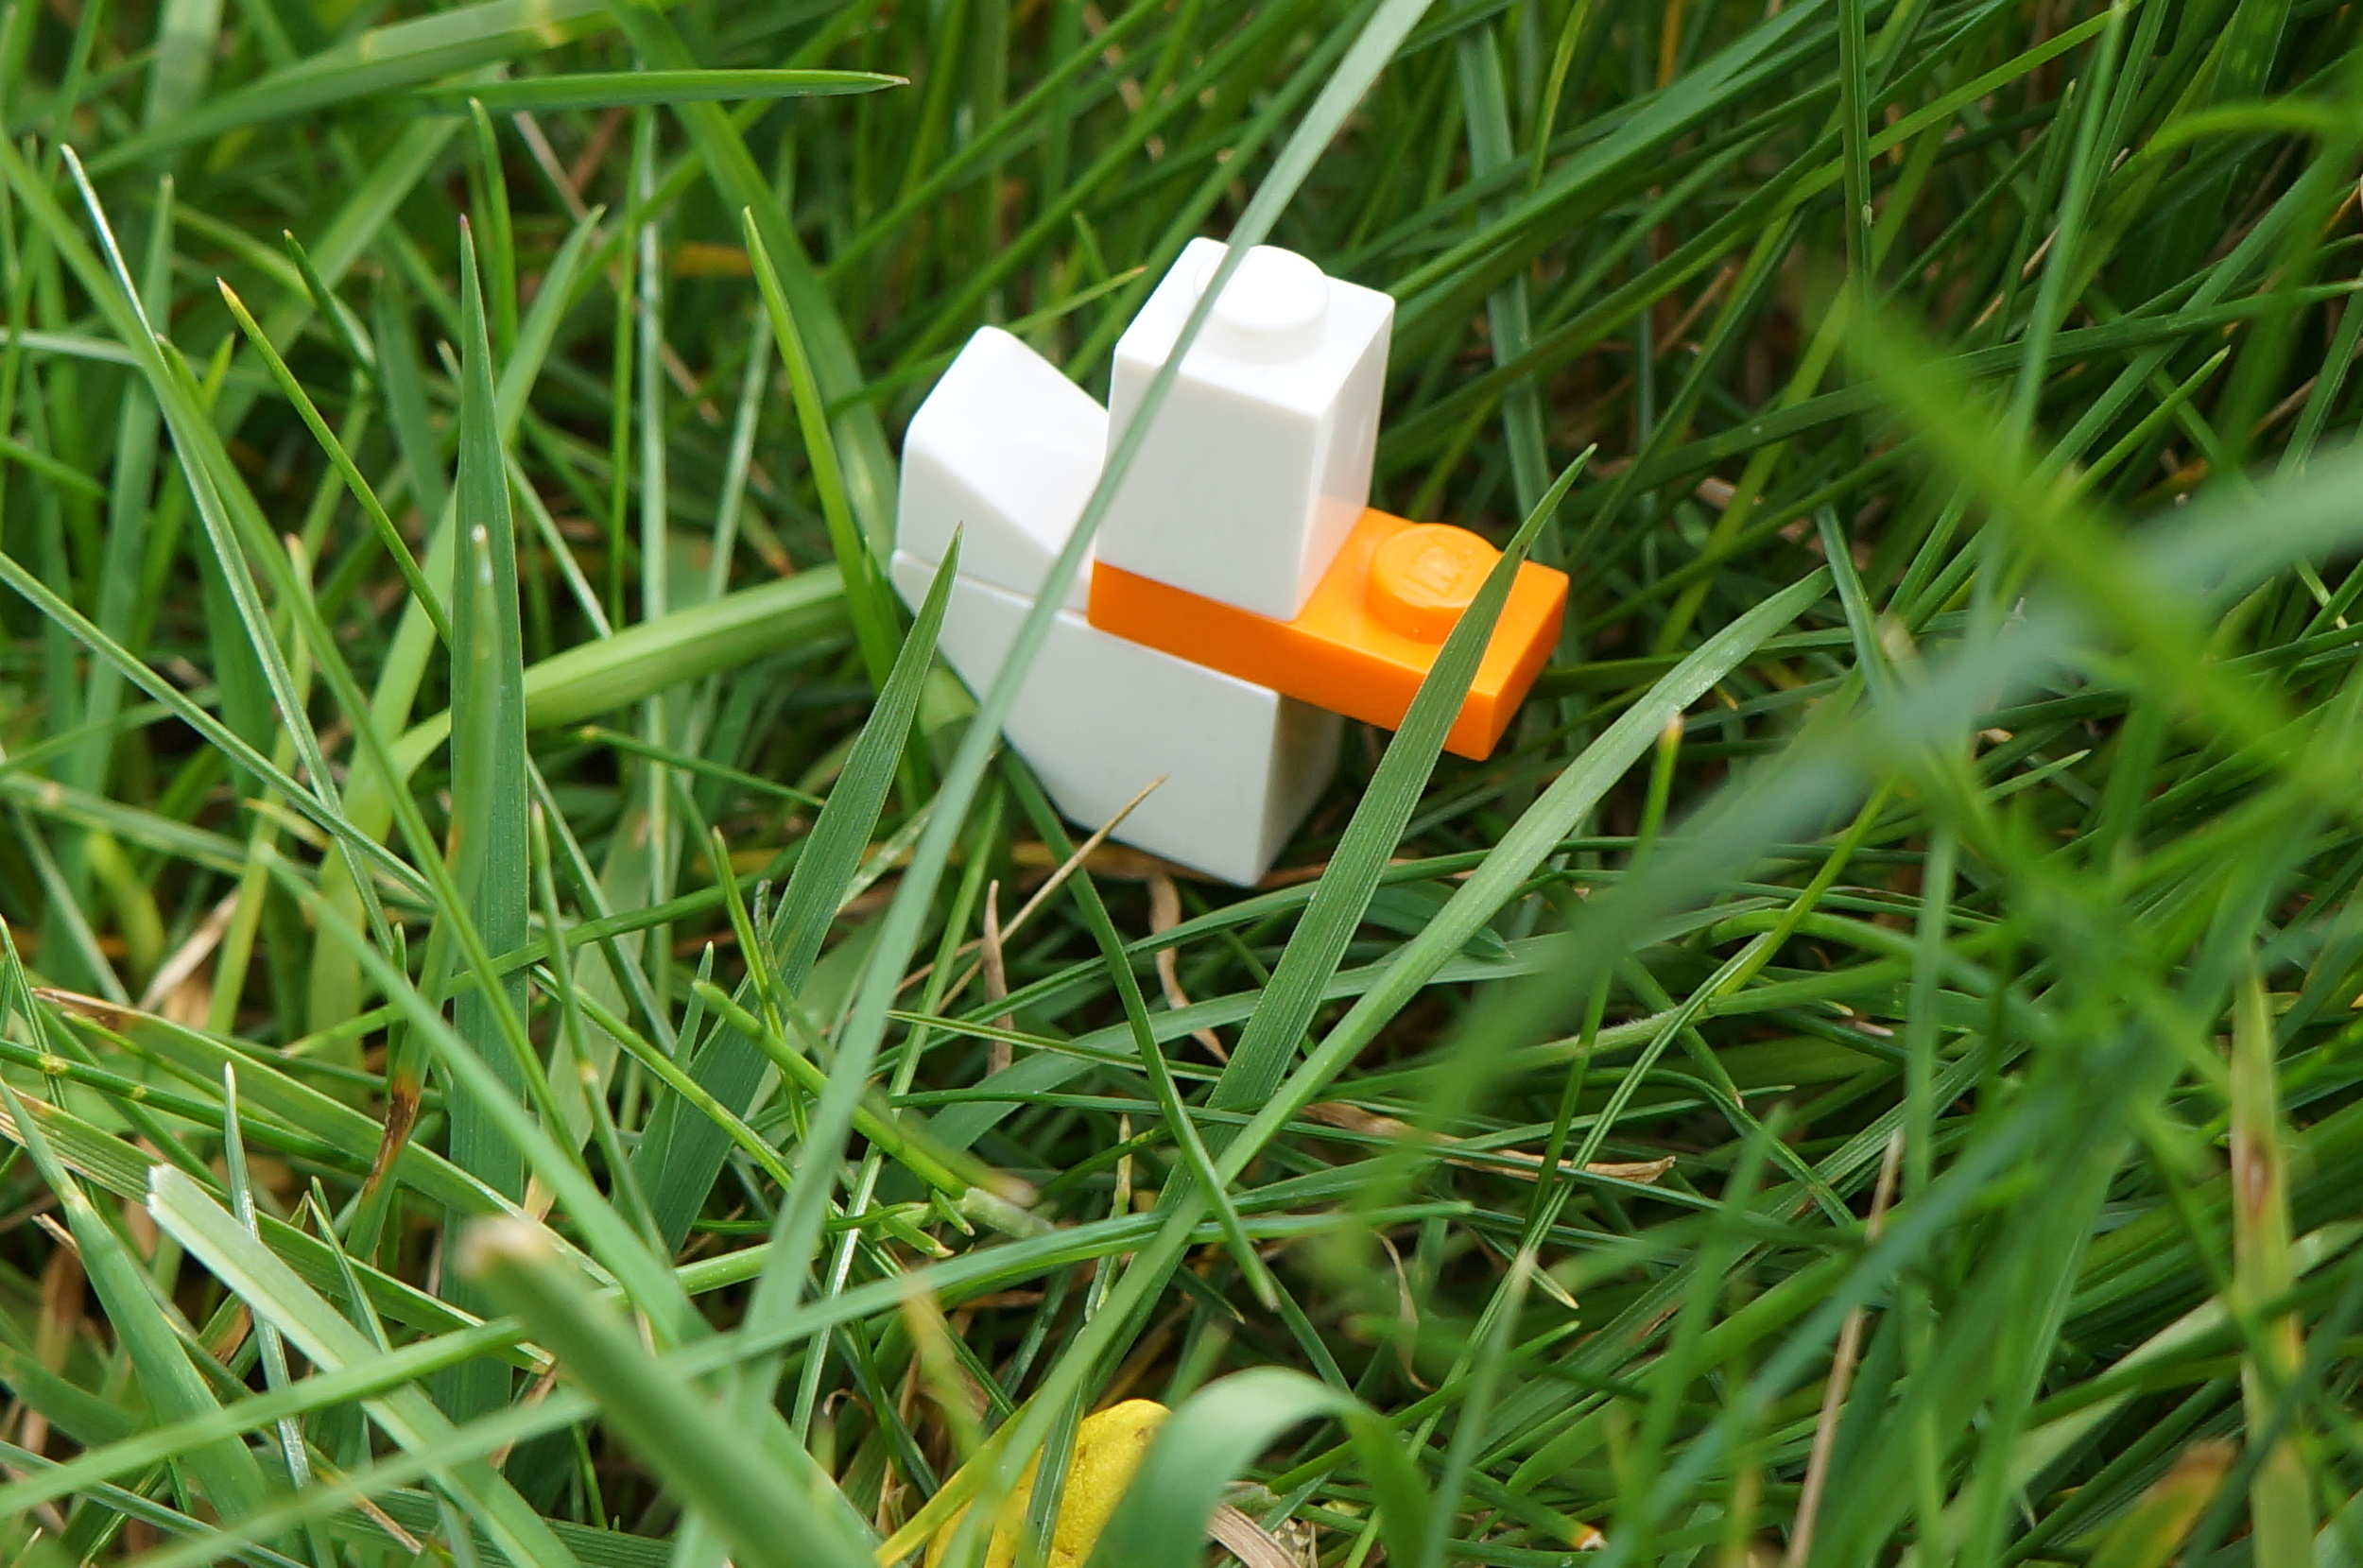 Close up view of a four-brick Lego duck in the grass. Photo©Narjas Carrington